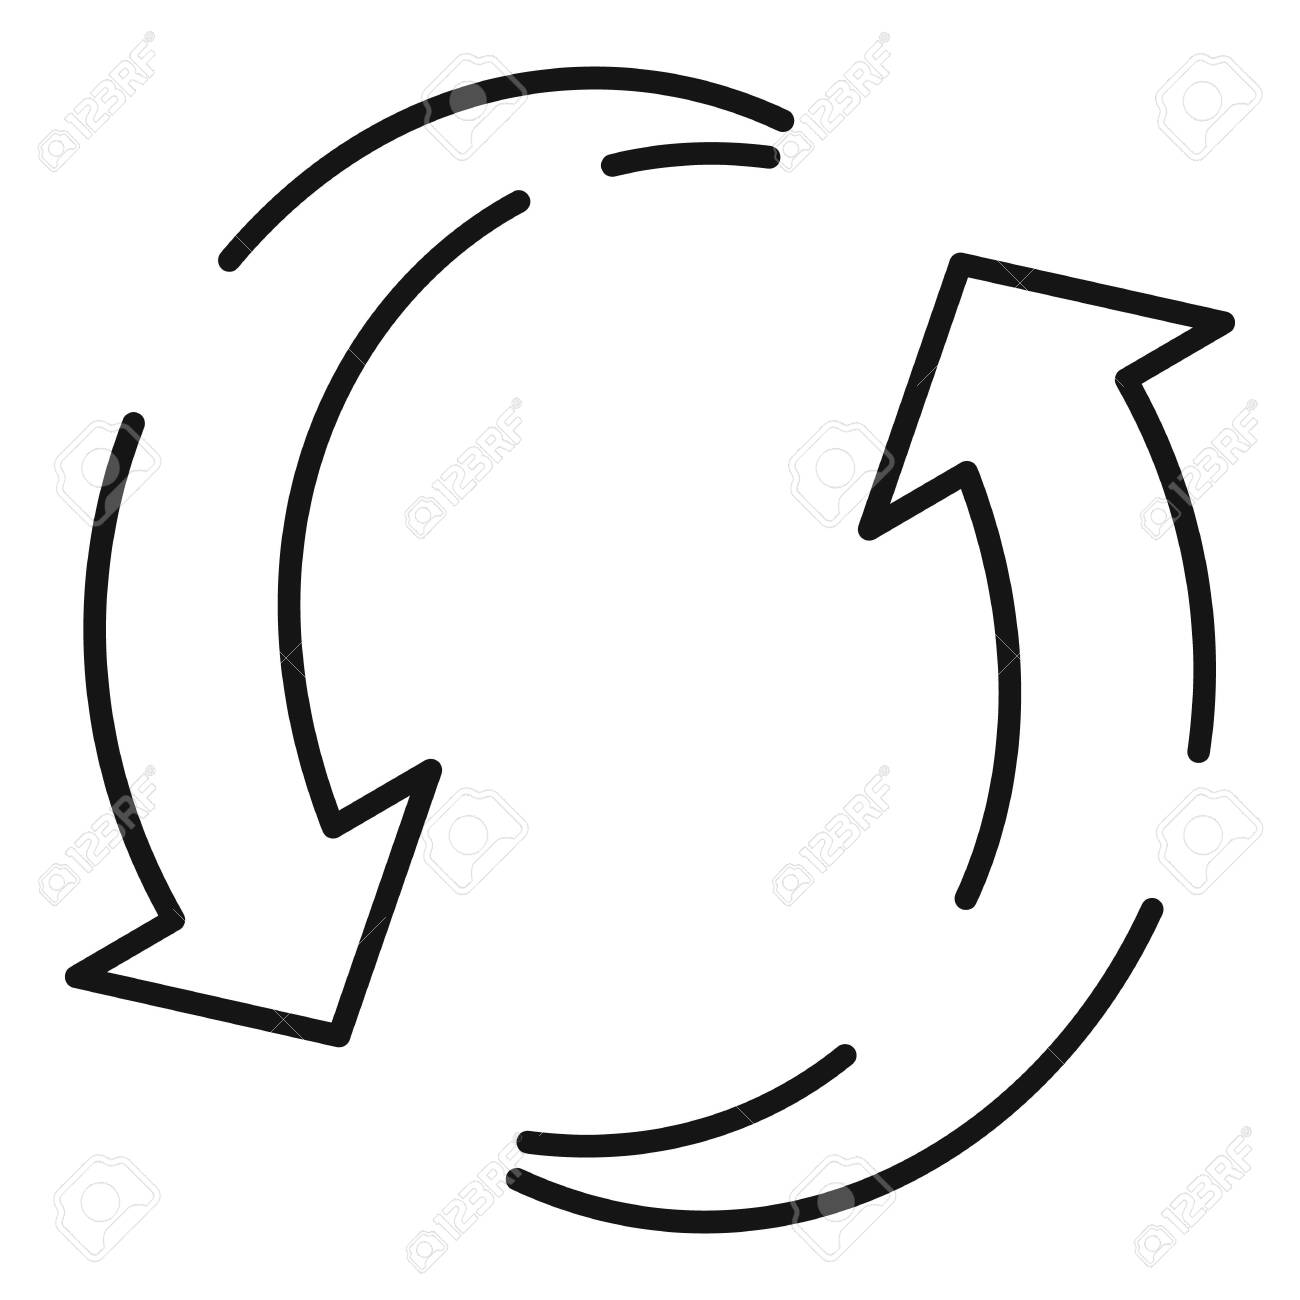 Plastic recycling icon, outline style - 144653384